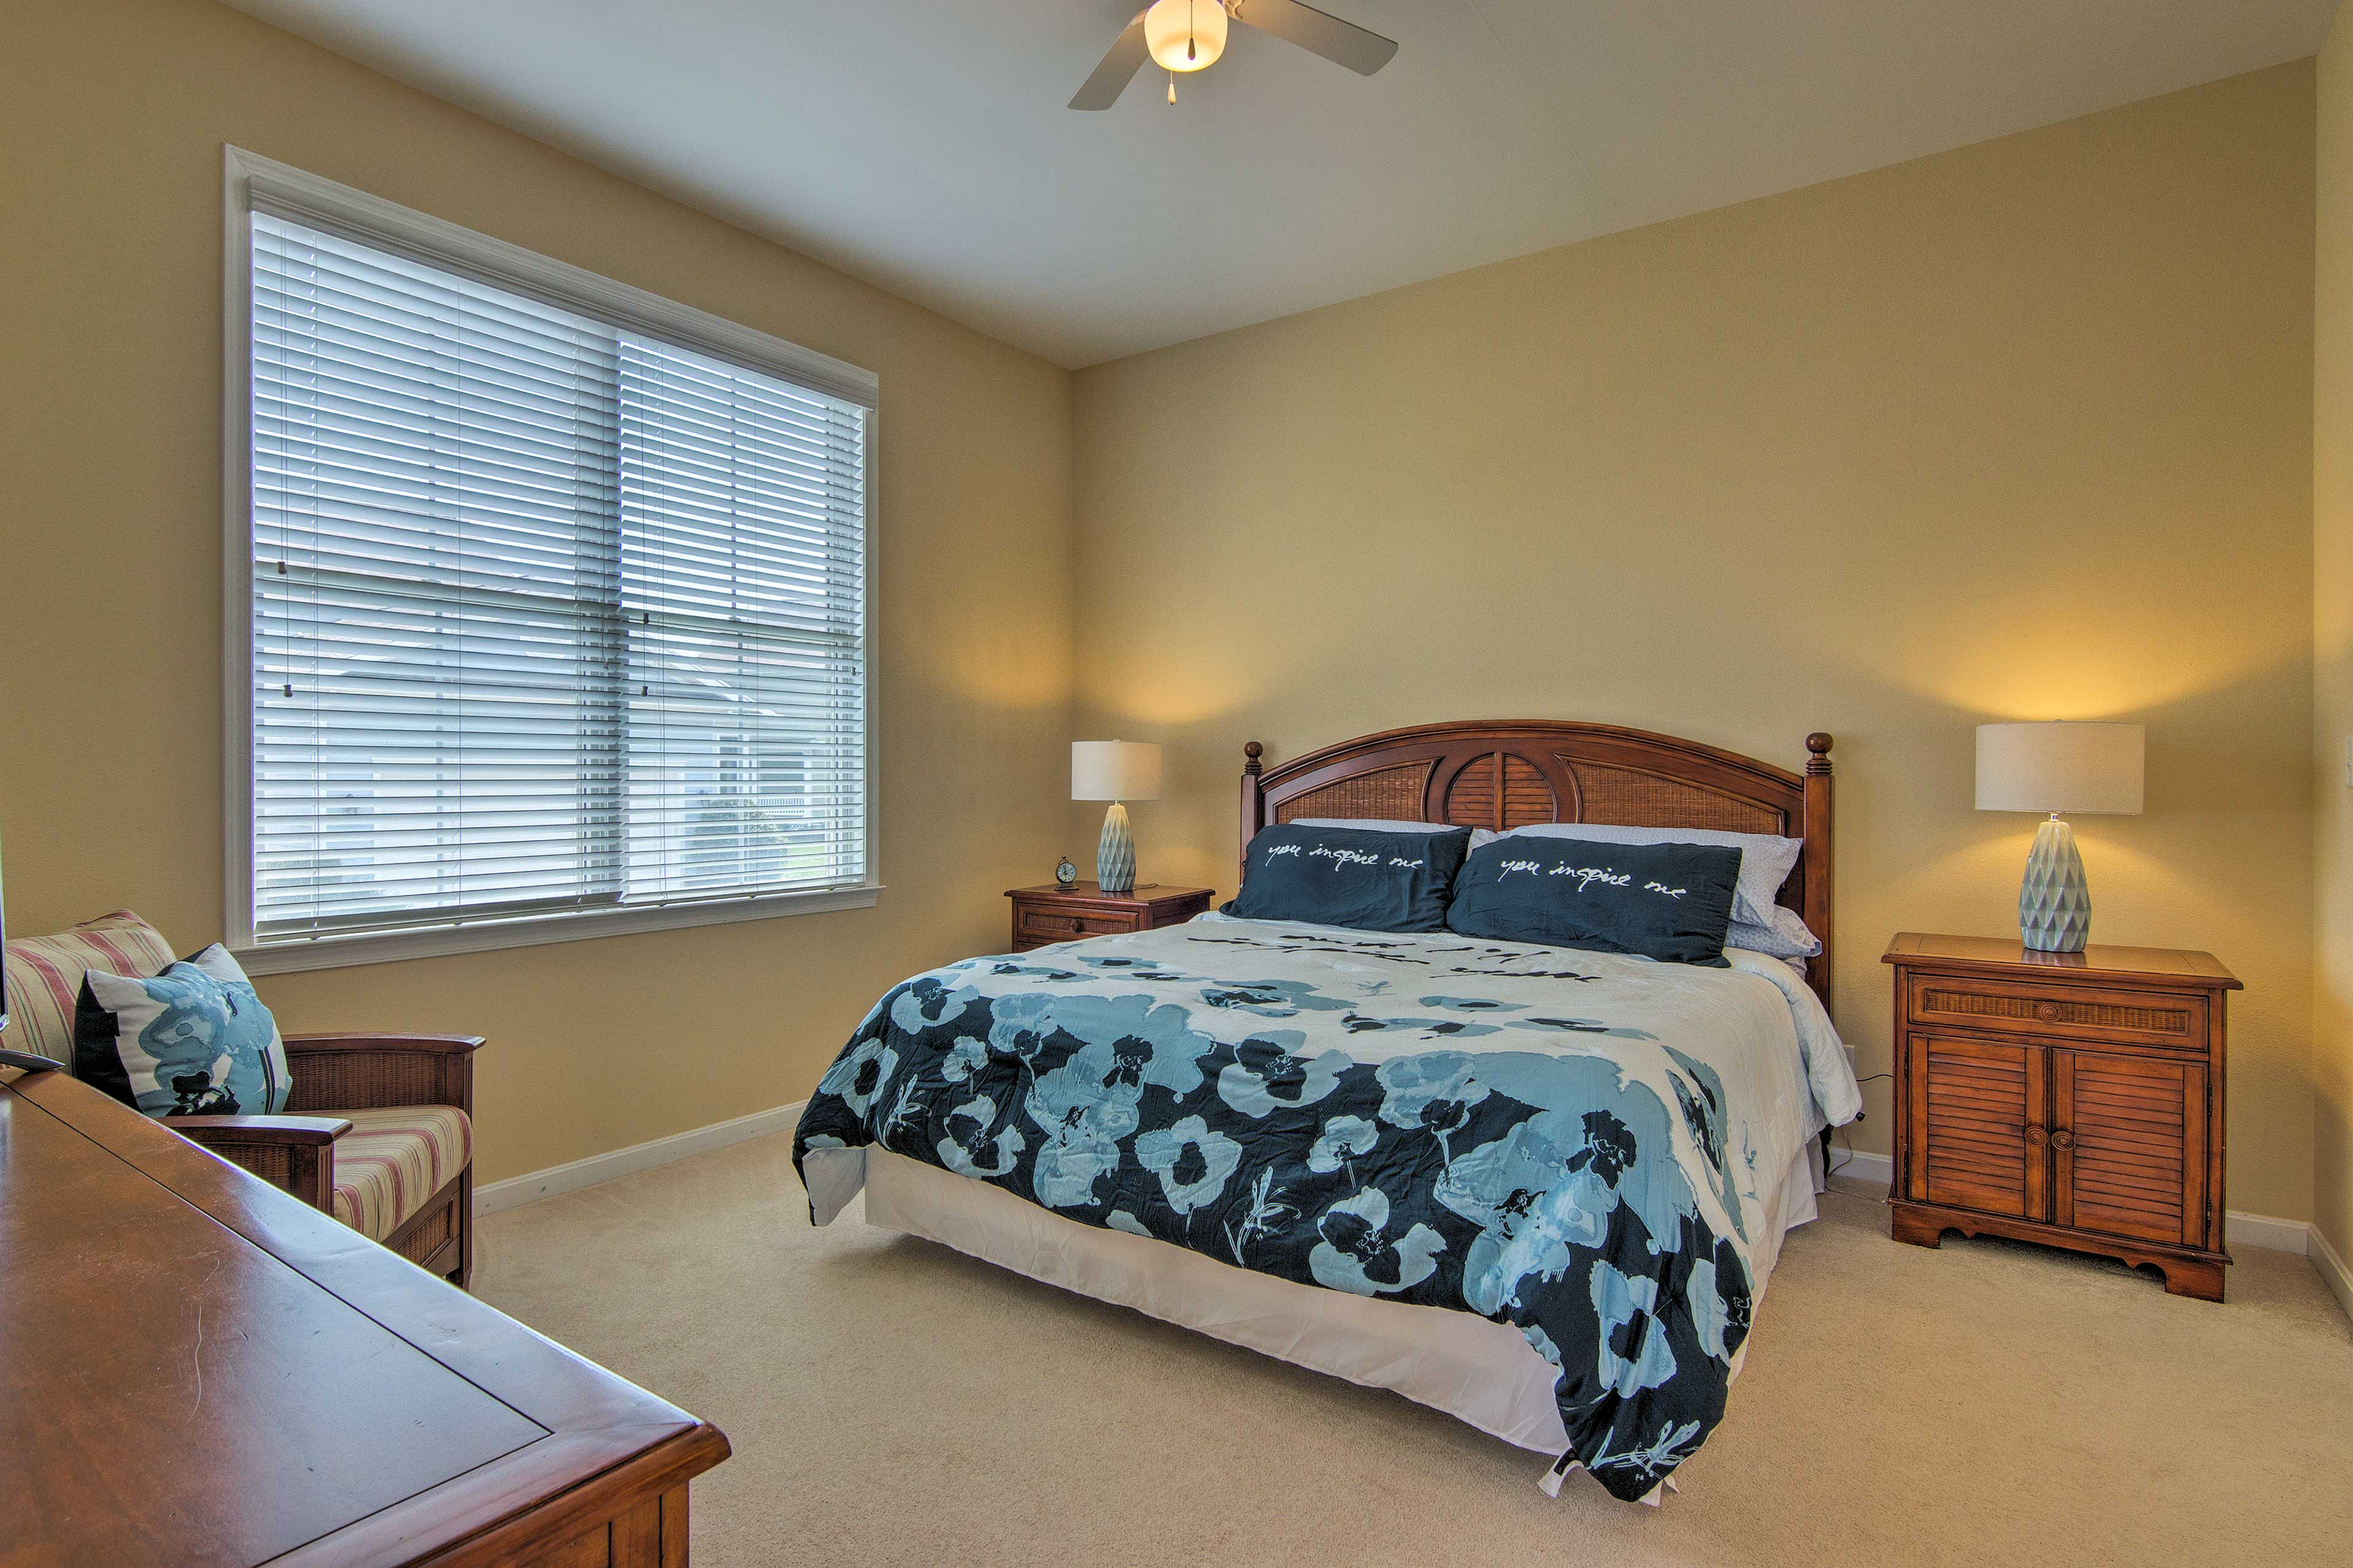 Slumber peacefully in the cloud-like king bed in the master bedroom.